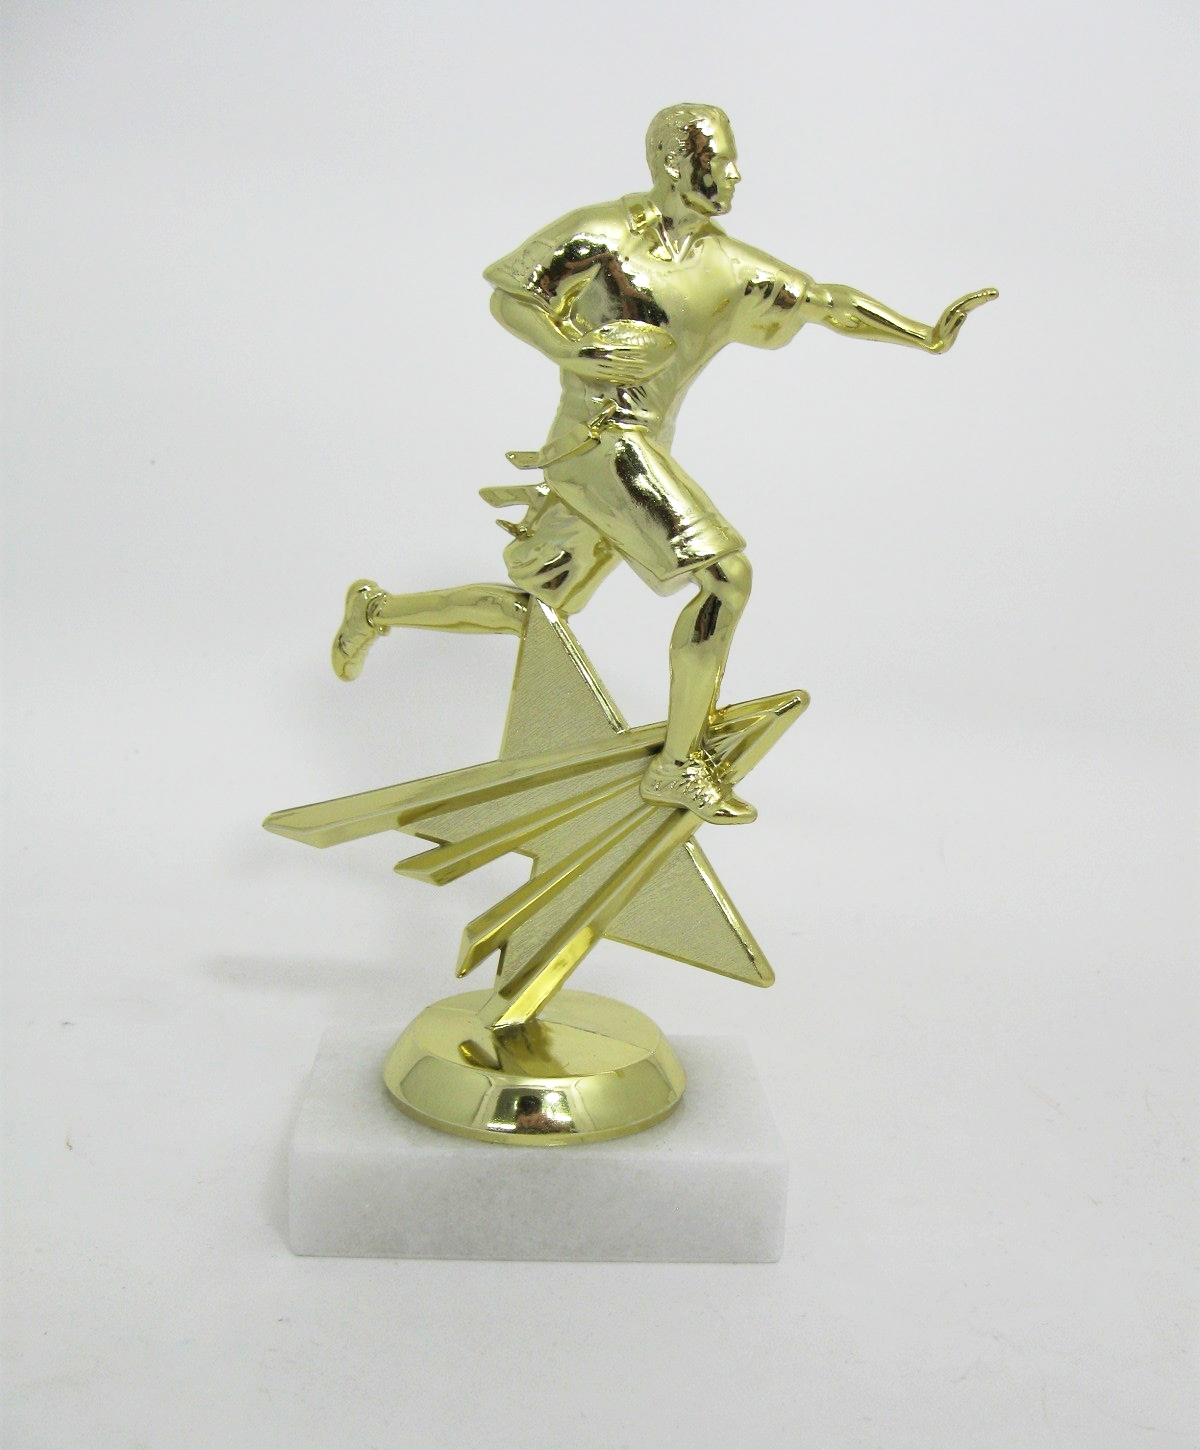 Football Figures on Marble Base -$7.16 each (Includes tax & engraving). [ITEM#:  16C ]